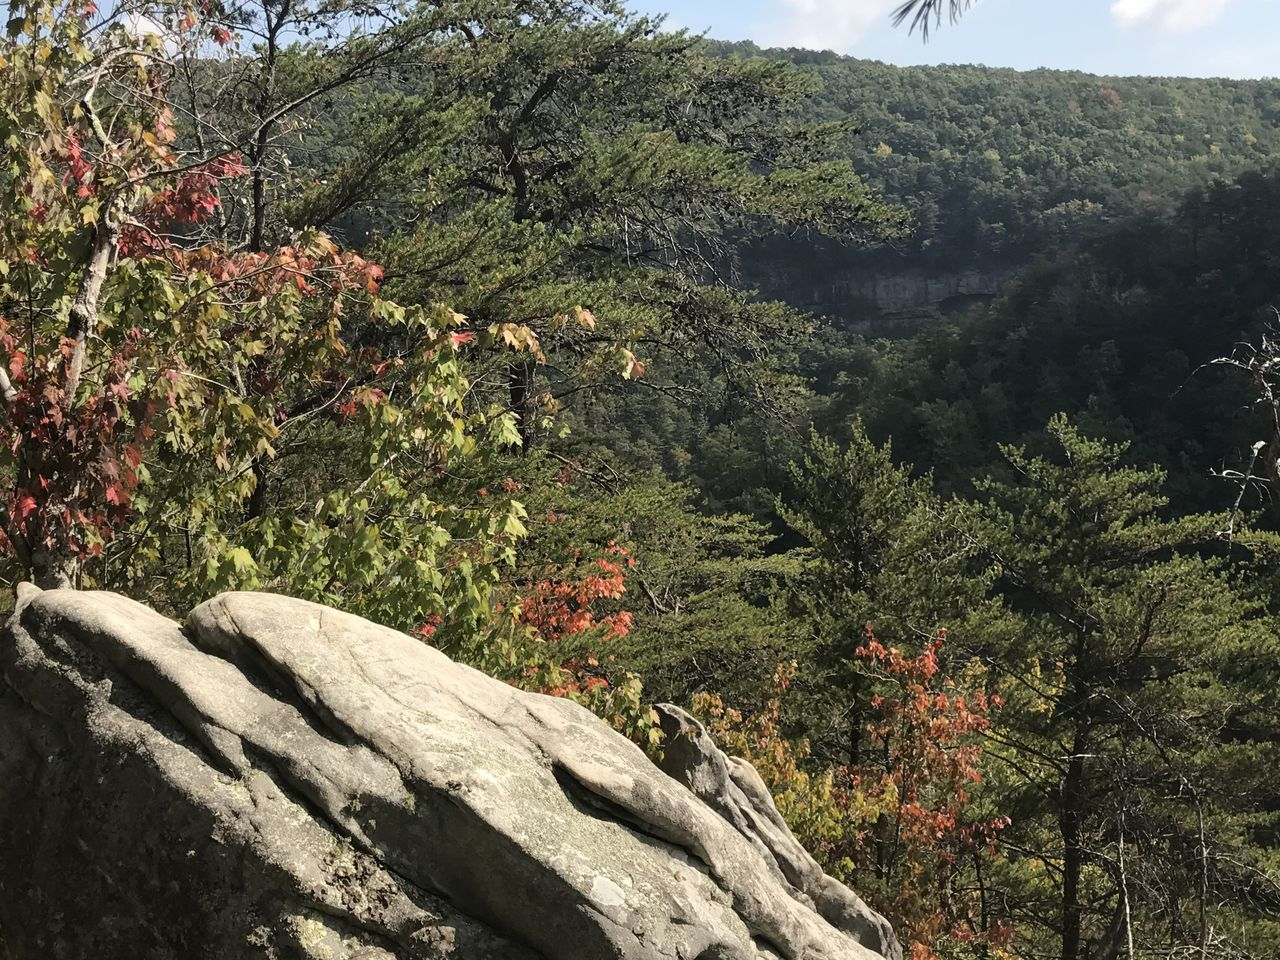 Beauty In Nature Cloudland Canyon Day Fall Freshness Green Color Growth Lush Foliage Majestic Mountain Nature No People Non-urban Scene Outdoors Remote Rock Rock Formation Rocky Mountains Scenics Solitude Tranquil Scene Tranquility Tree Valley